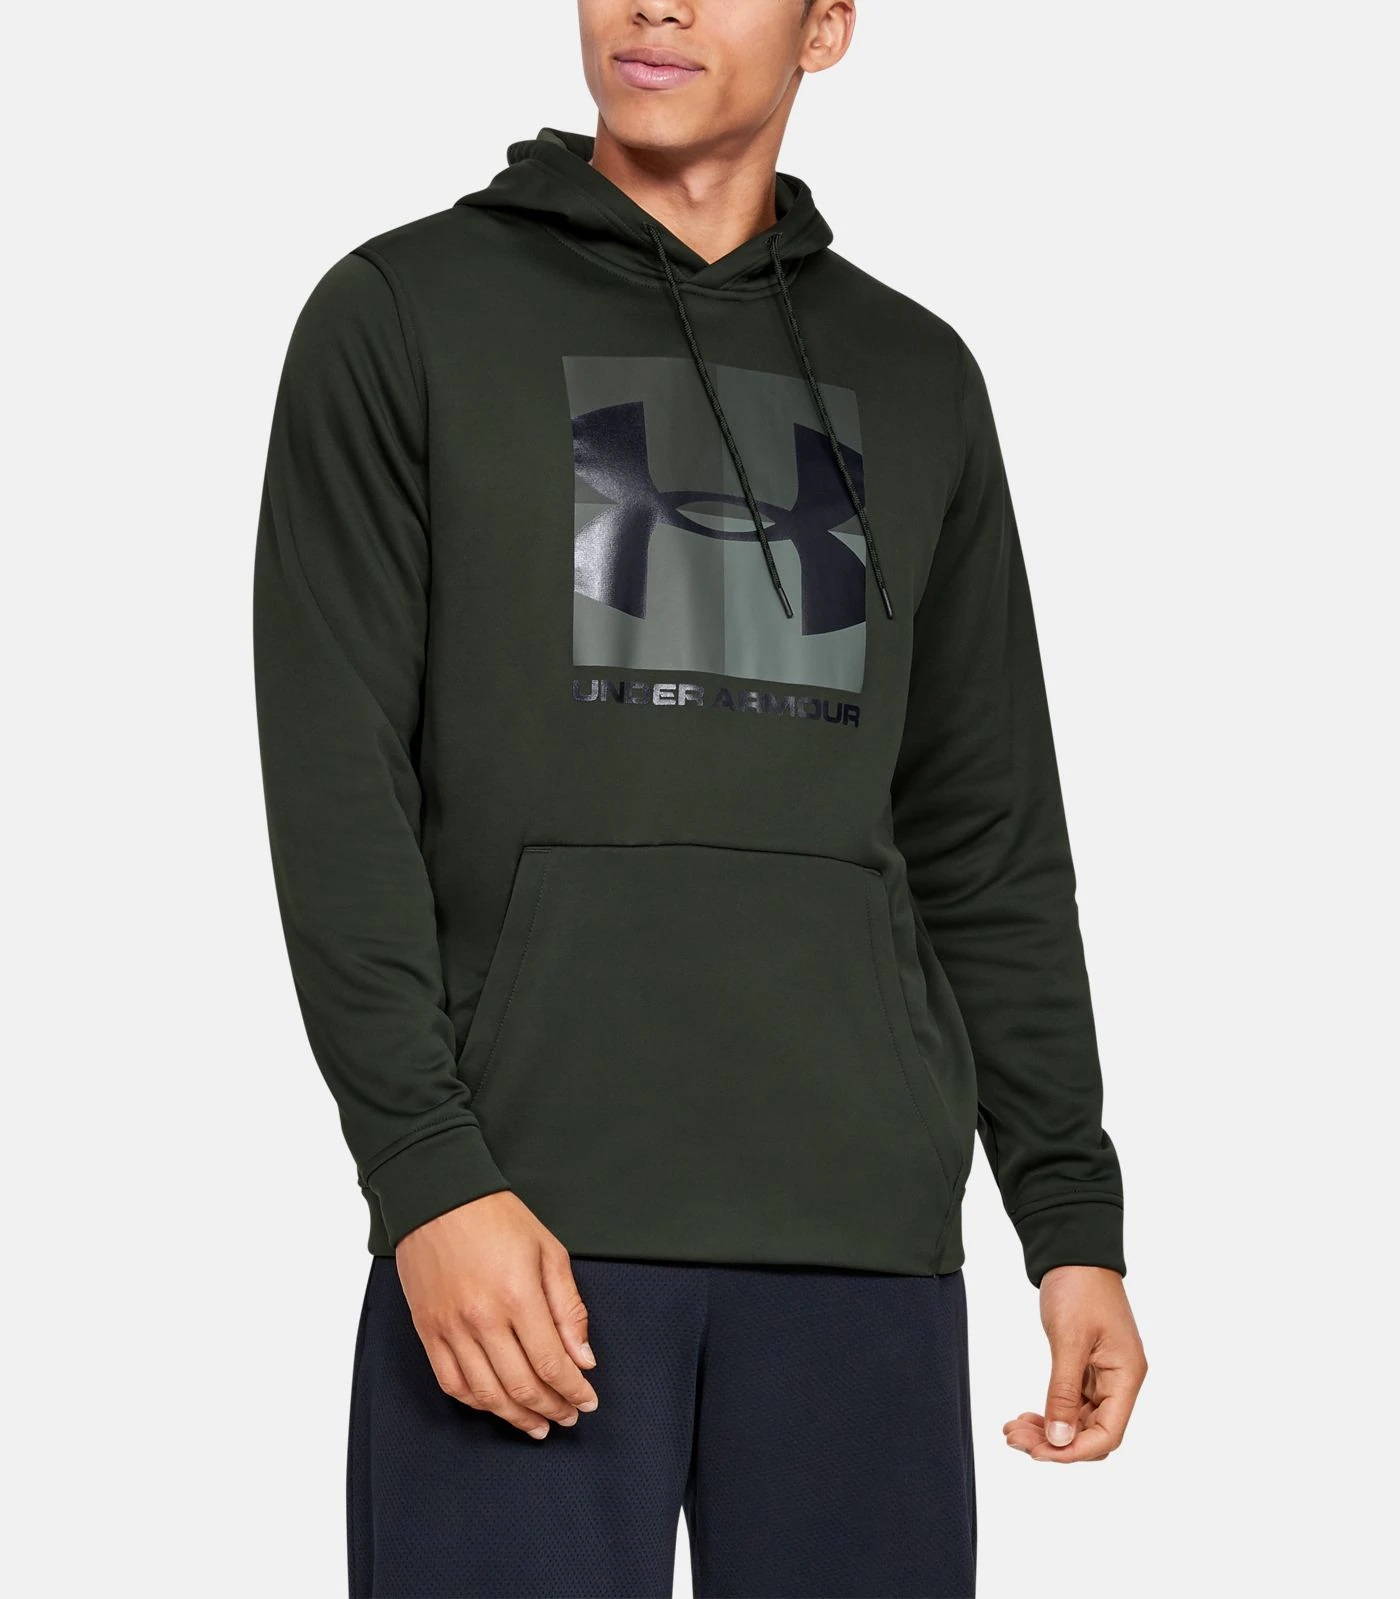 Under Armour Outlet: Extra 25% Off $75+: Men's Armour Fleece Graphic Hoodie